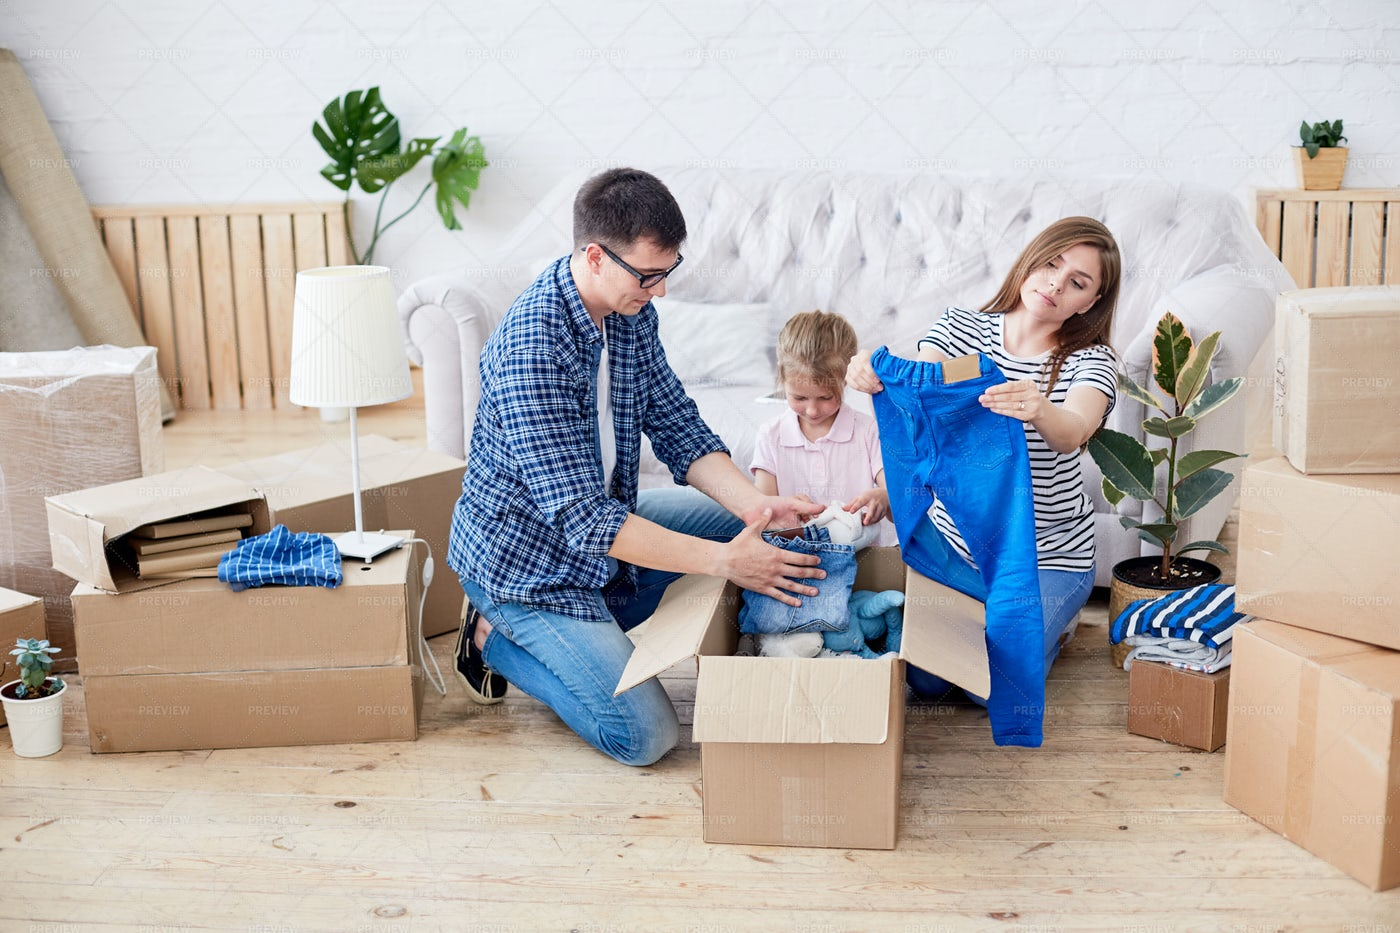 Wrapped Up In Unpacking Stuff: Stock Photos